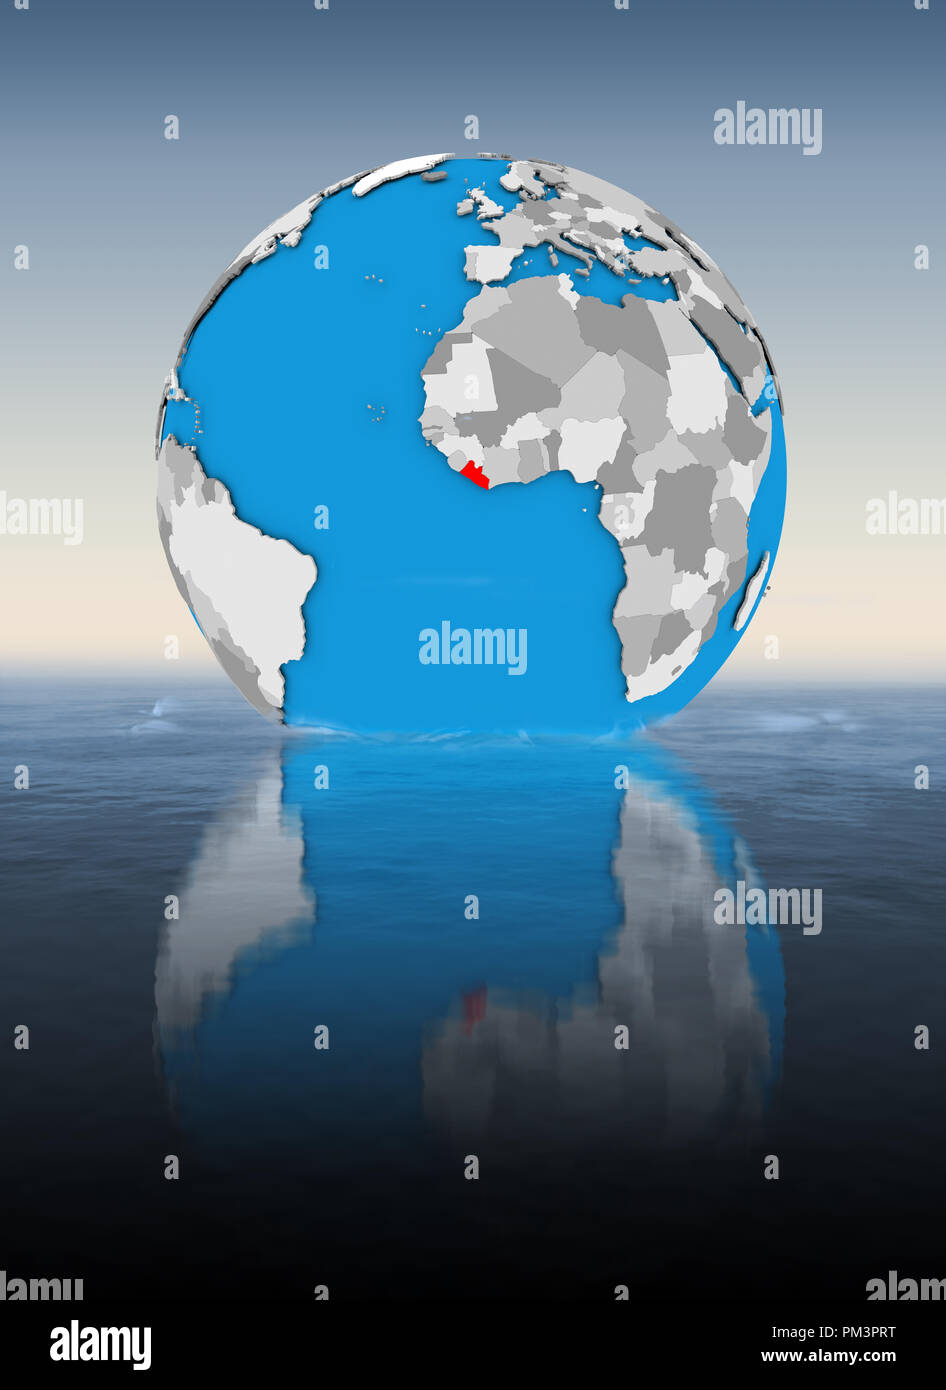 Liberia on globe floating in water. 3D illustration. - Stock Image